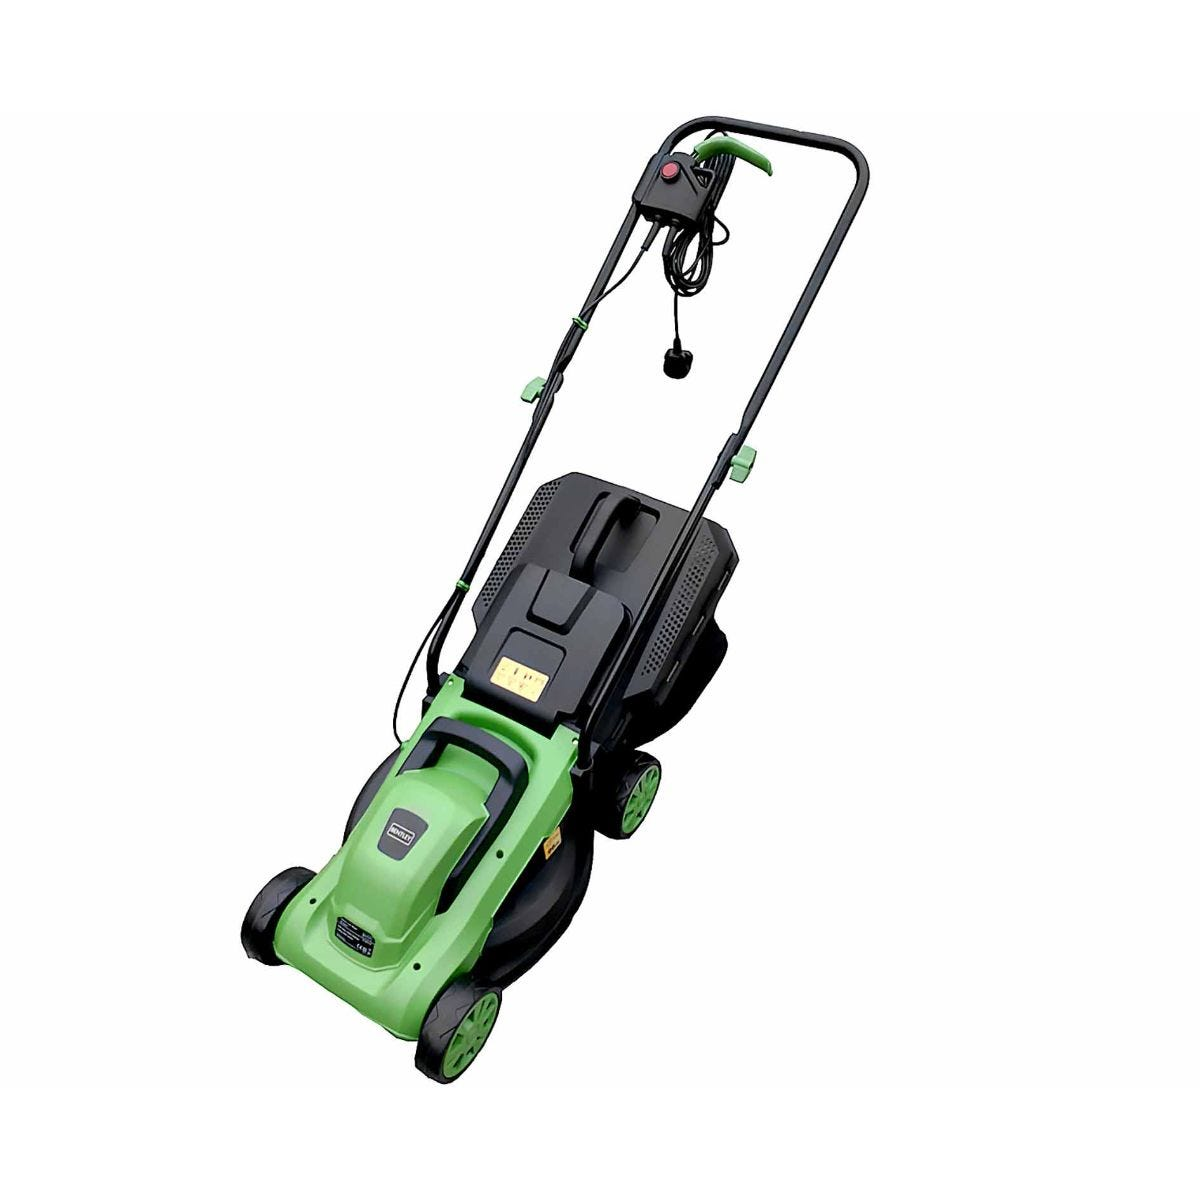 Image of Charles Bentley Wheeled Rotary Lawn Mower 12000W, Green